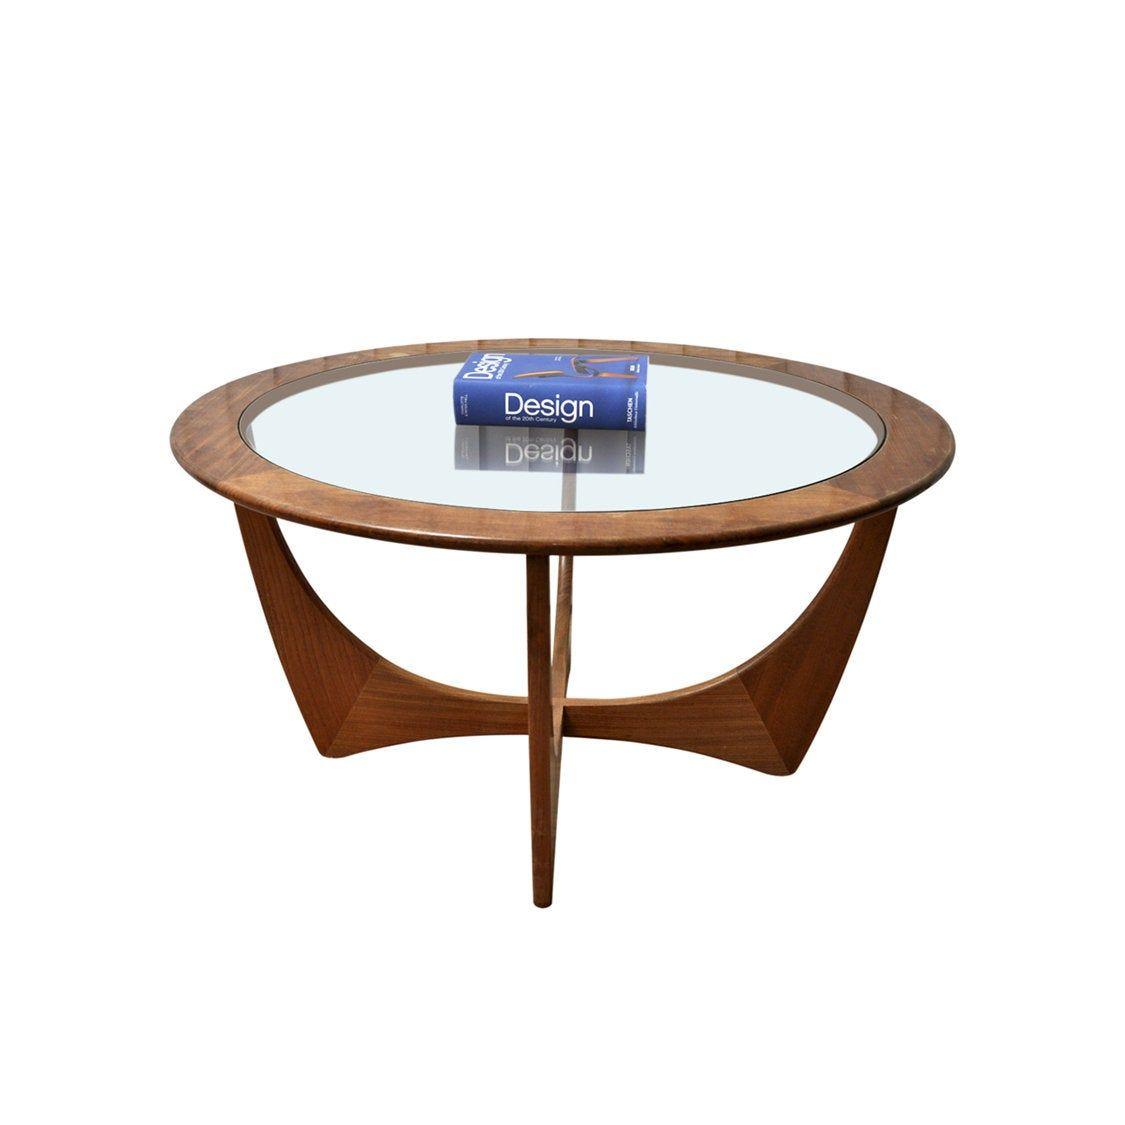 Pin On Mid Century Coffee And Occasional Tables [ 1125 x 1125 Pixel ]